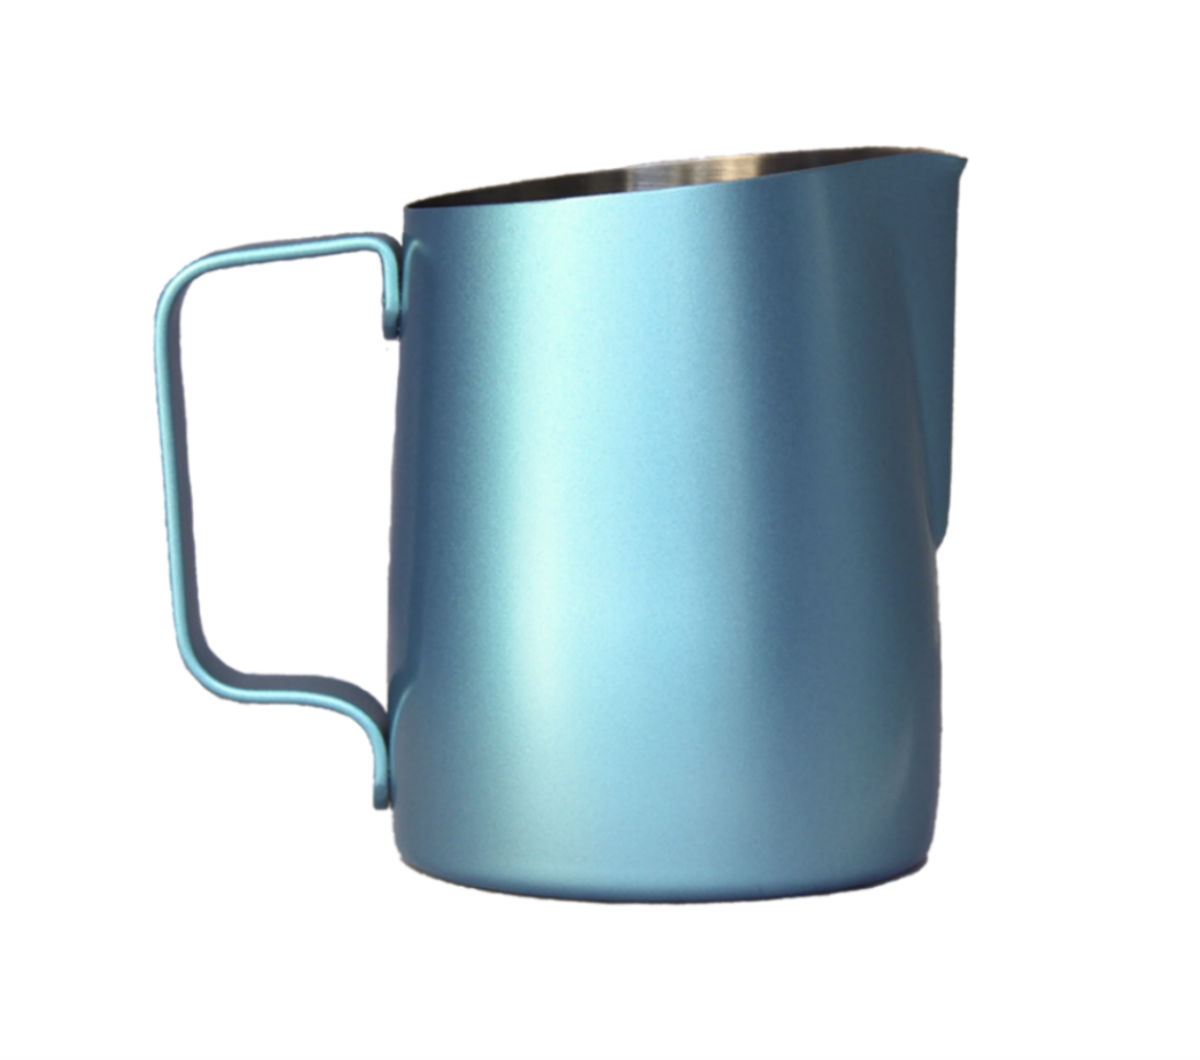 Tapered Milk Pitcher 500ml - sapphire blue